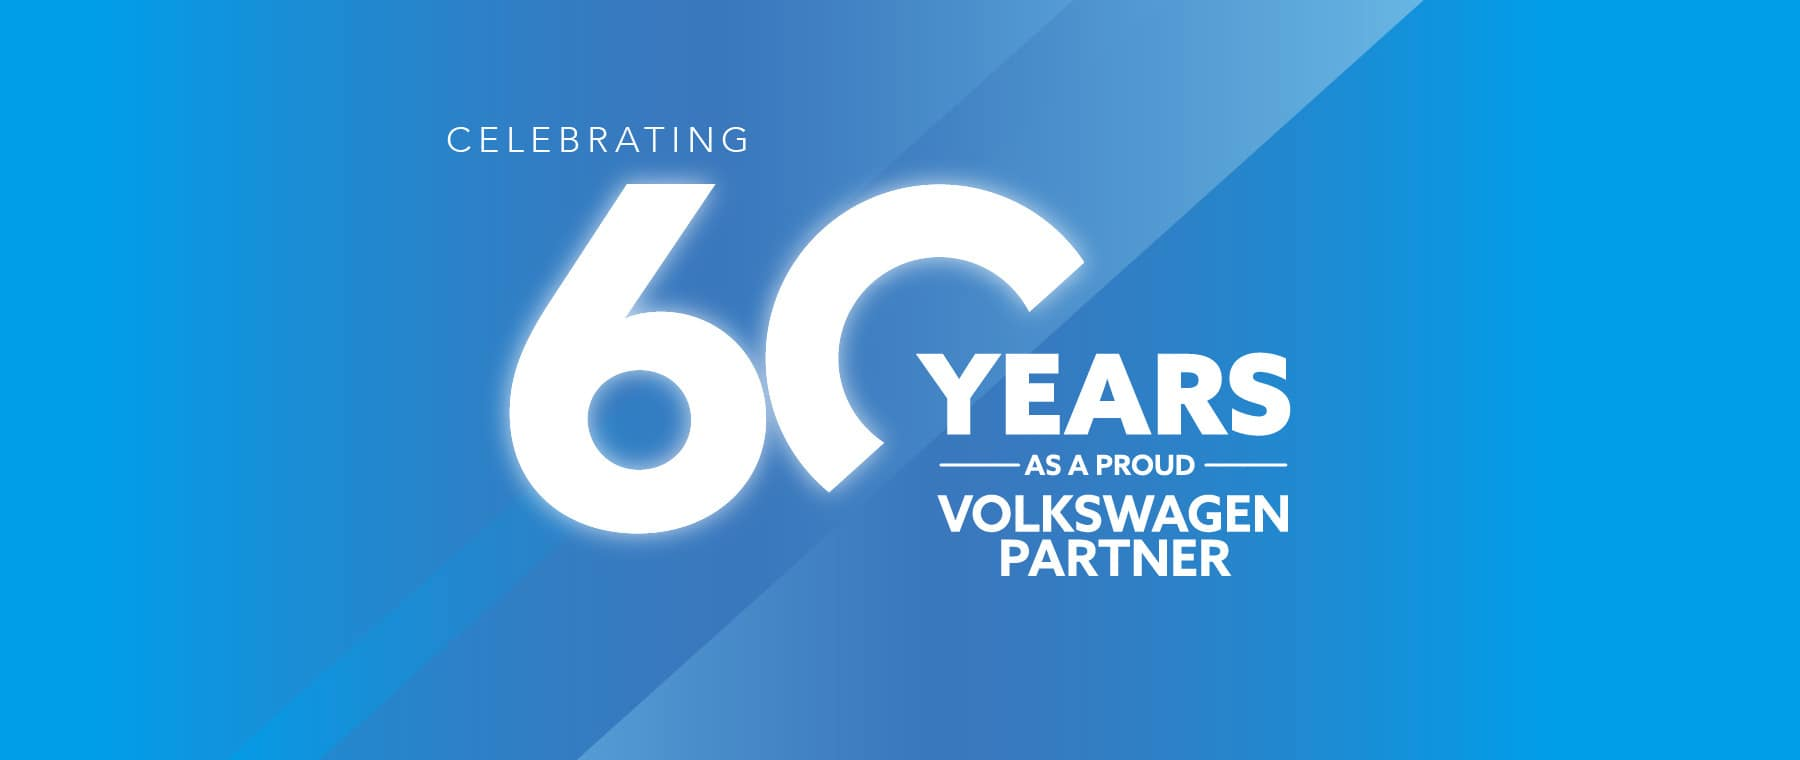 60 Years as a proud Volkswagen Partner